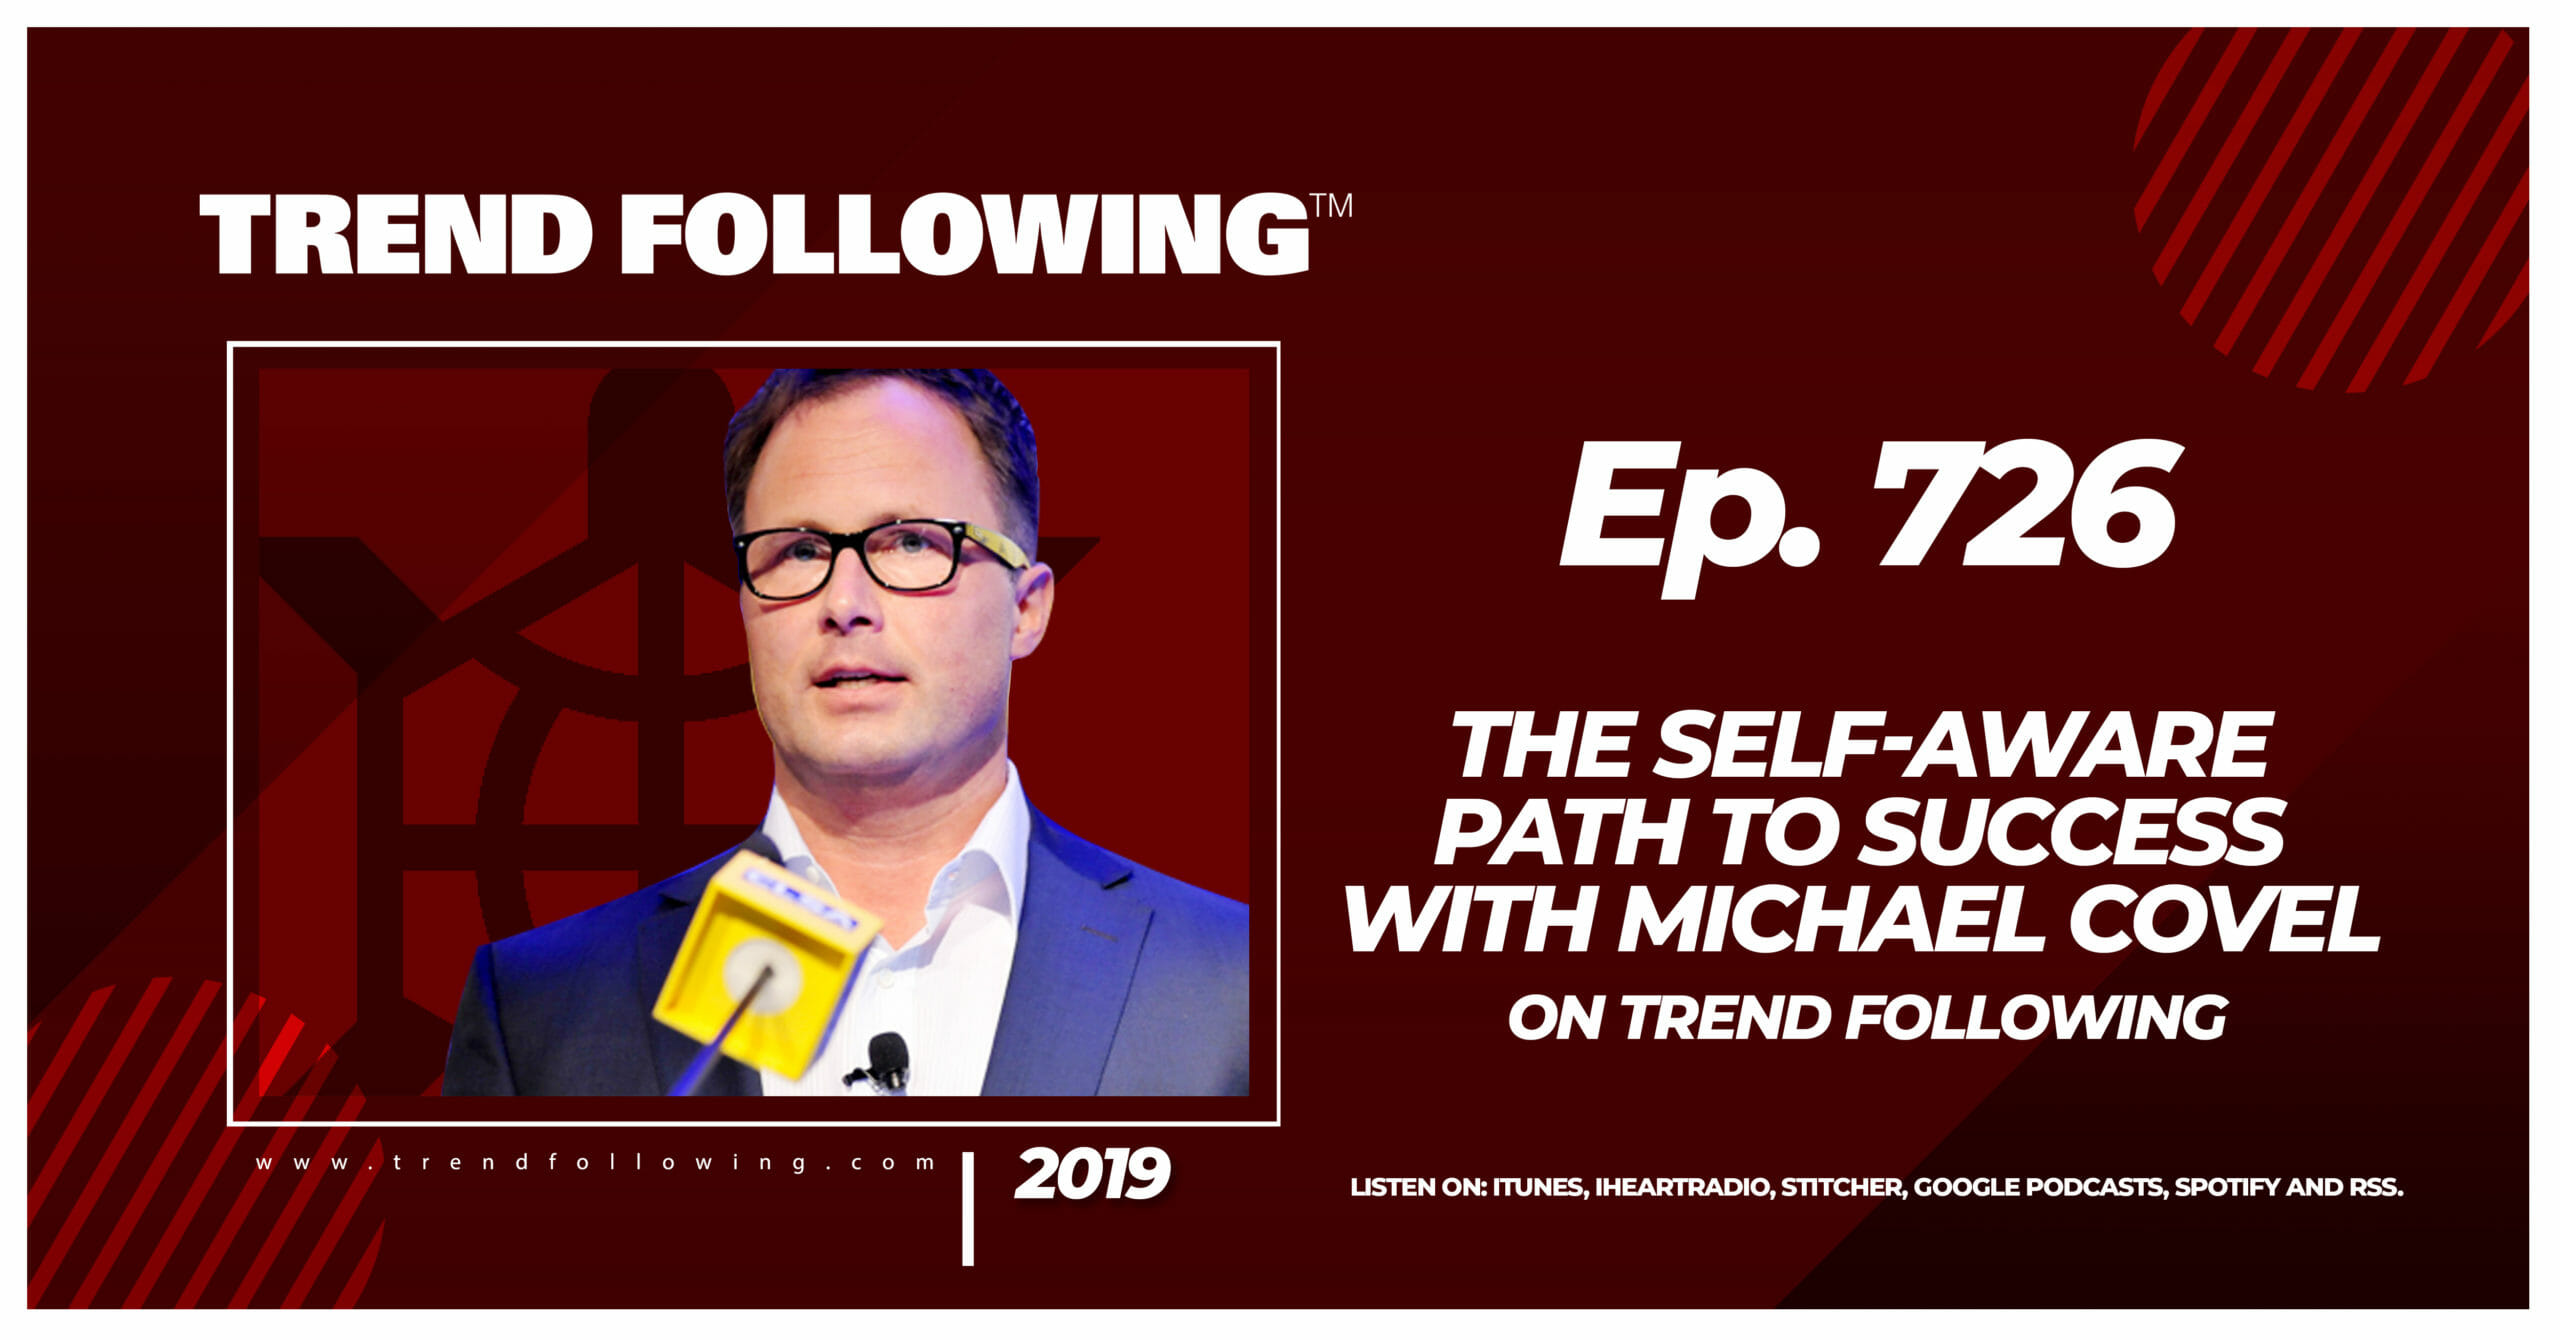 The Self-Aware Path to Success with Michael Covel